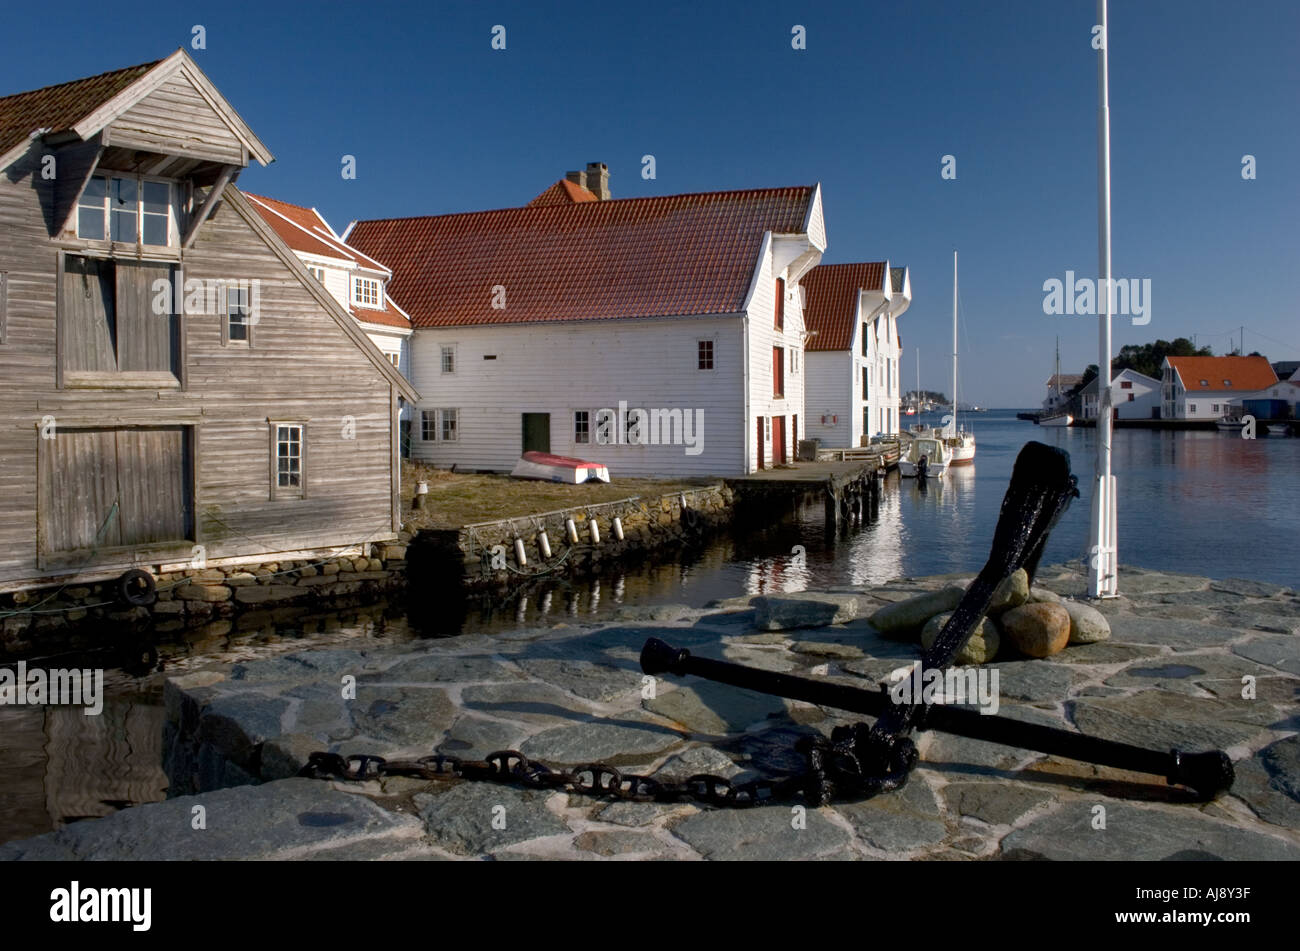 Old, traditional wooden houses in the small town of Skudeneshavn. - Stock Image